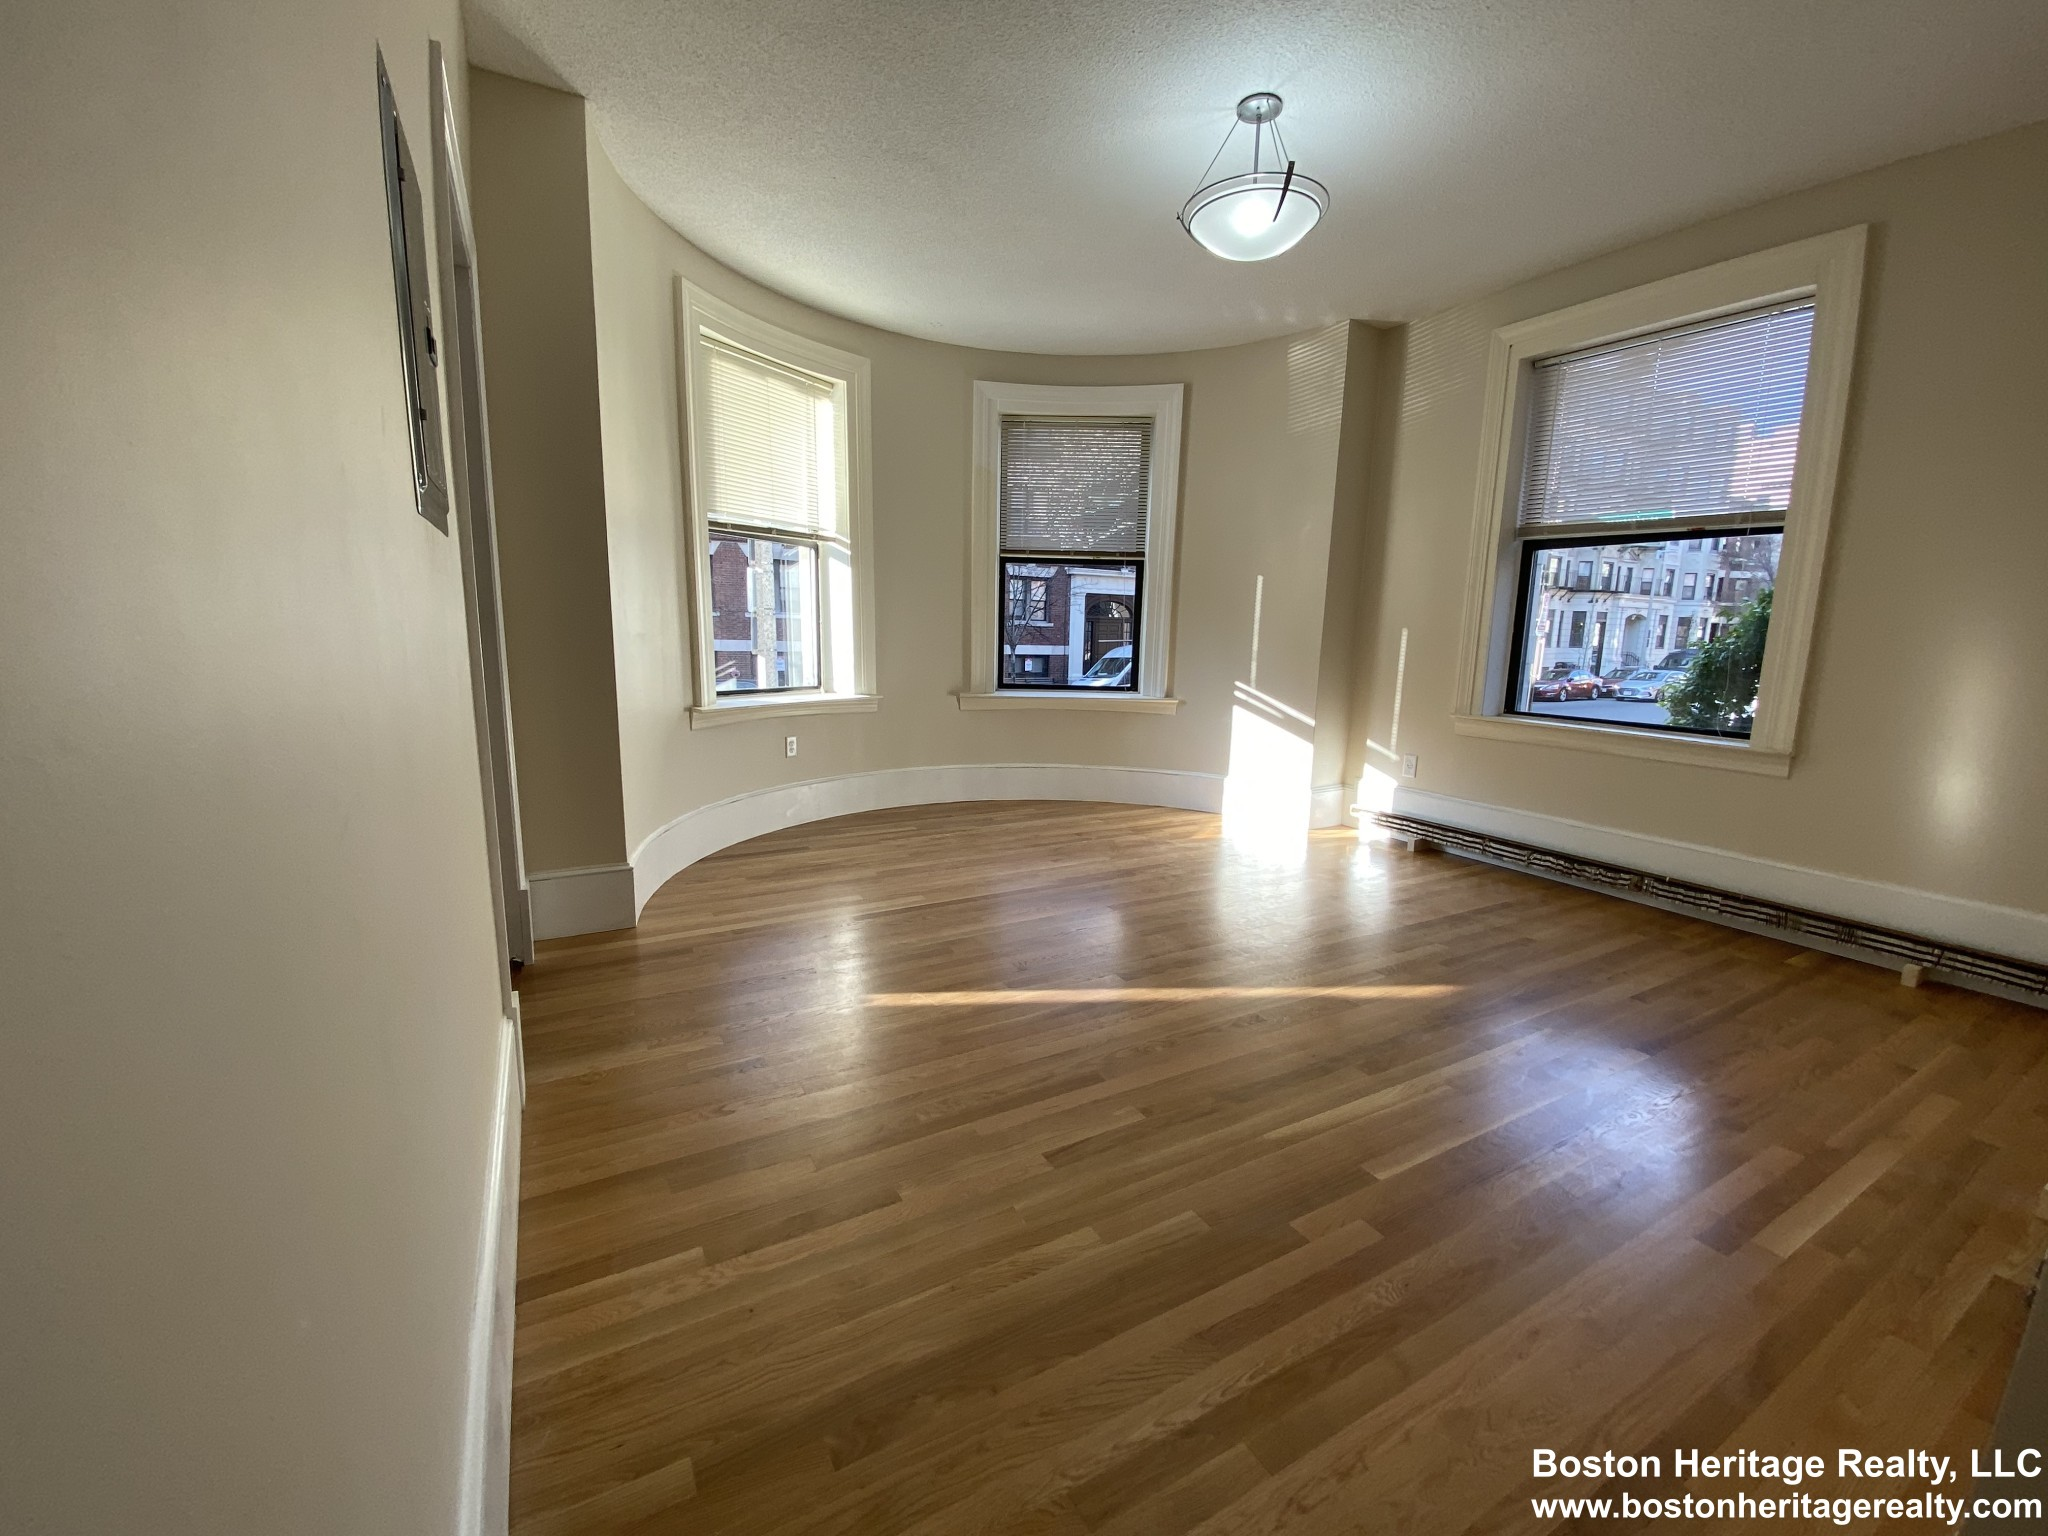 2 Beds, 1 Bath apartment in Boston, Fenway for $2,995